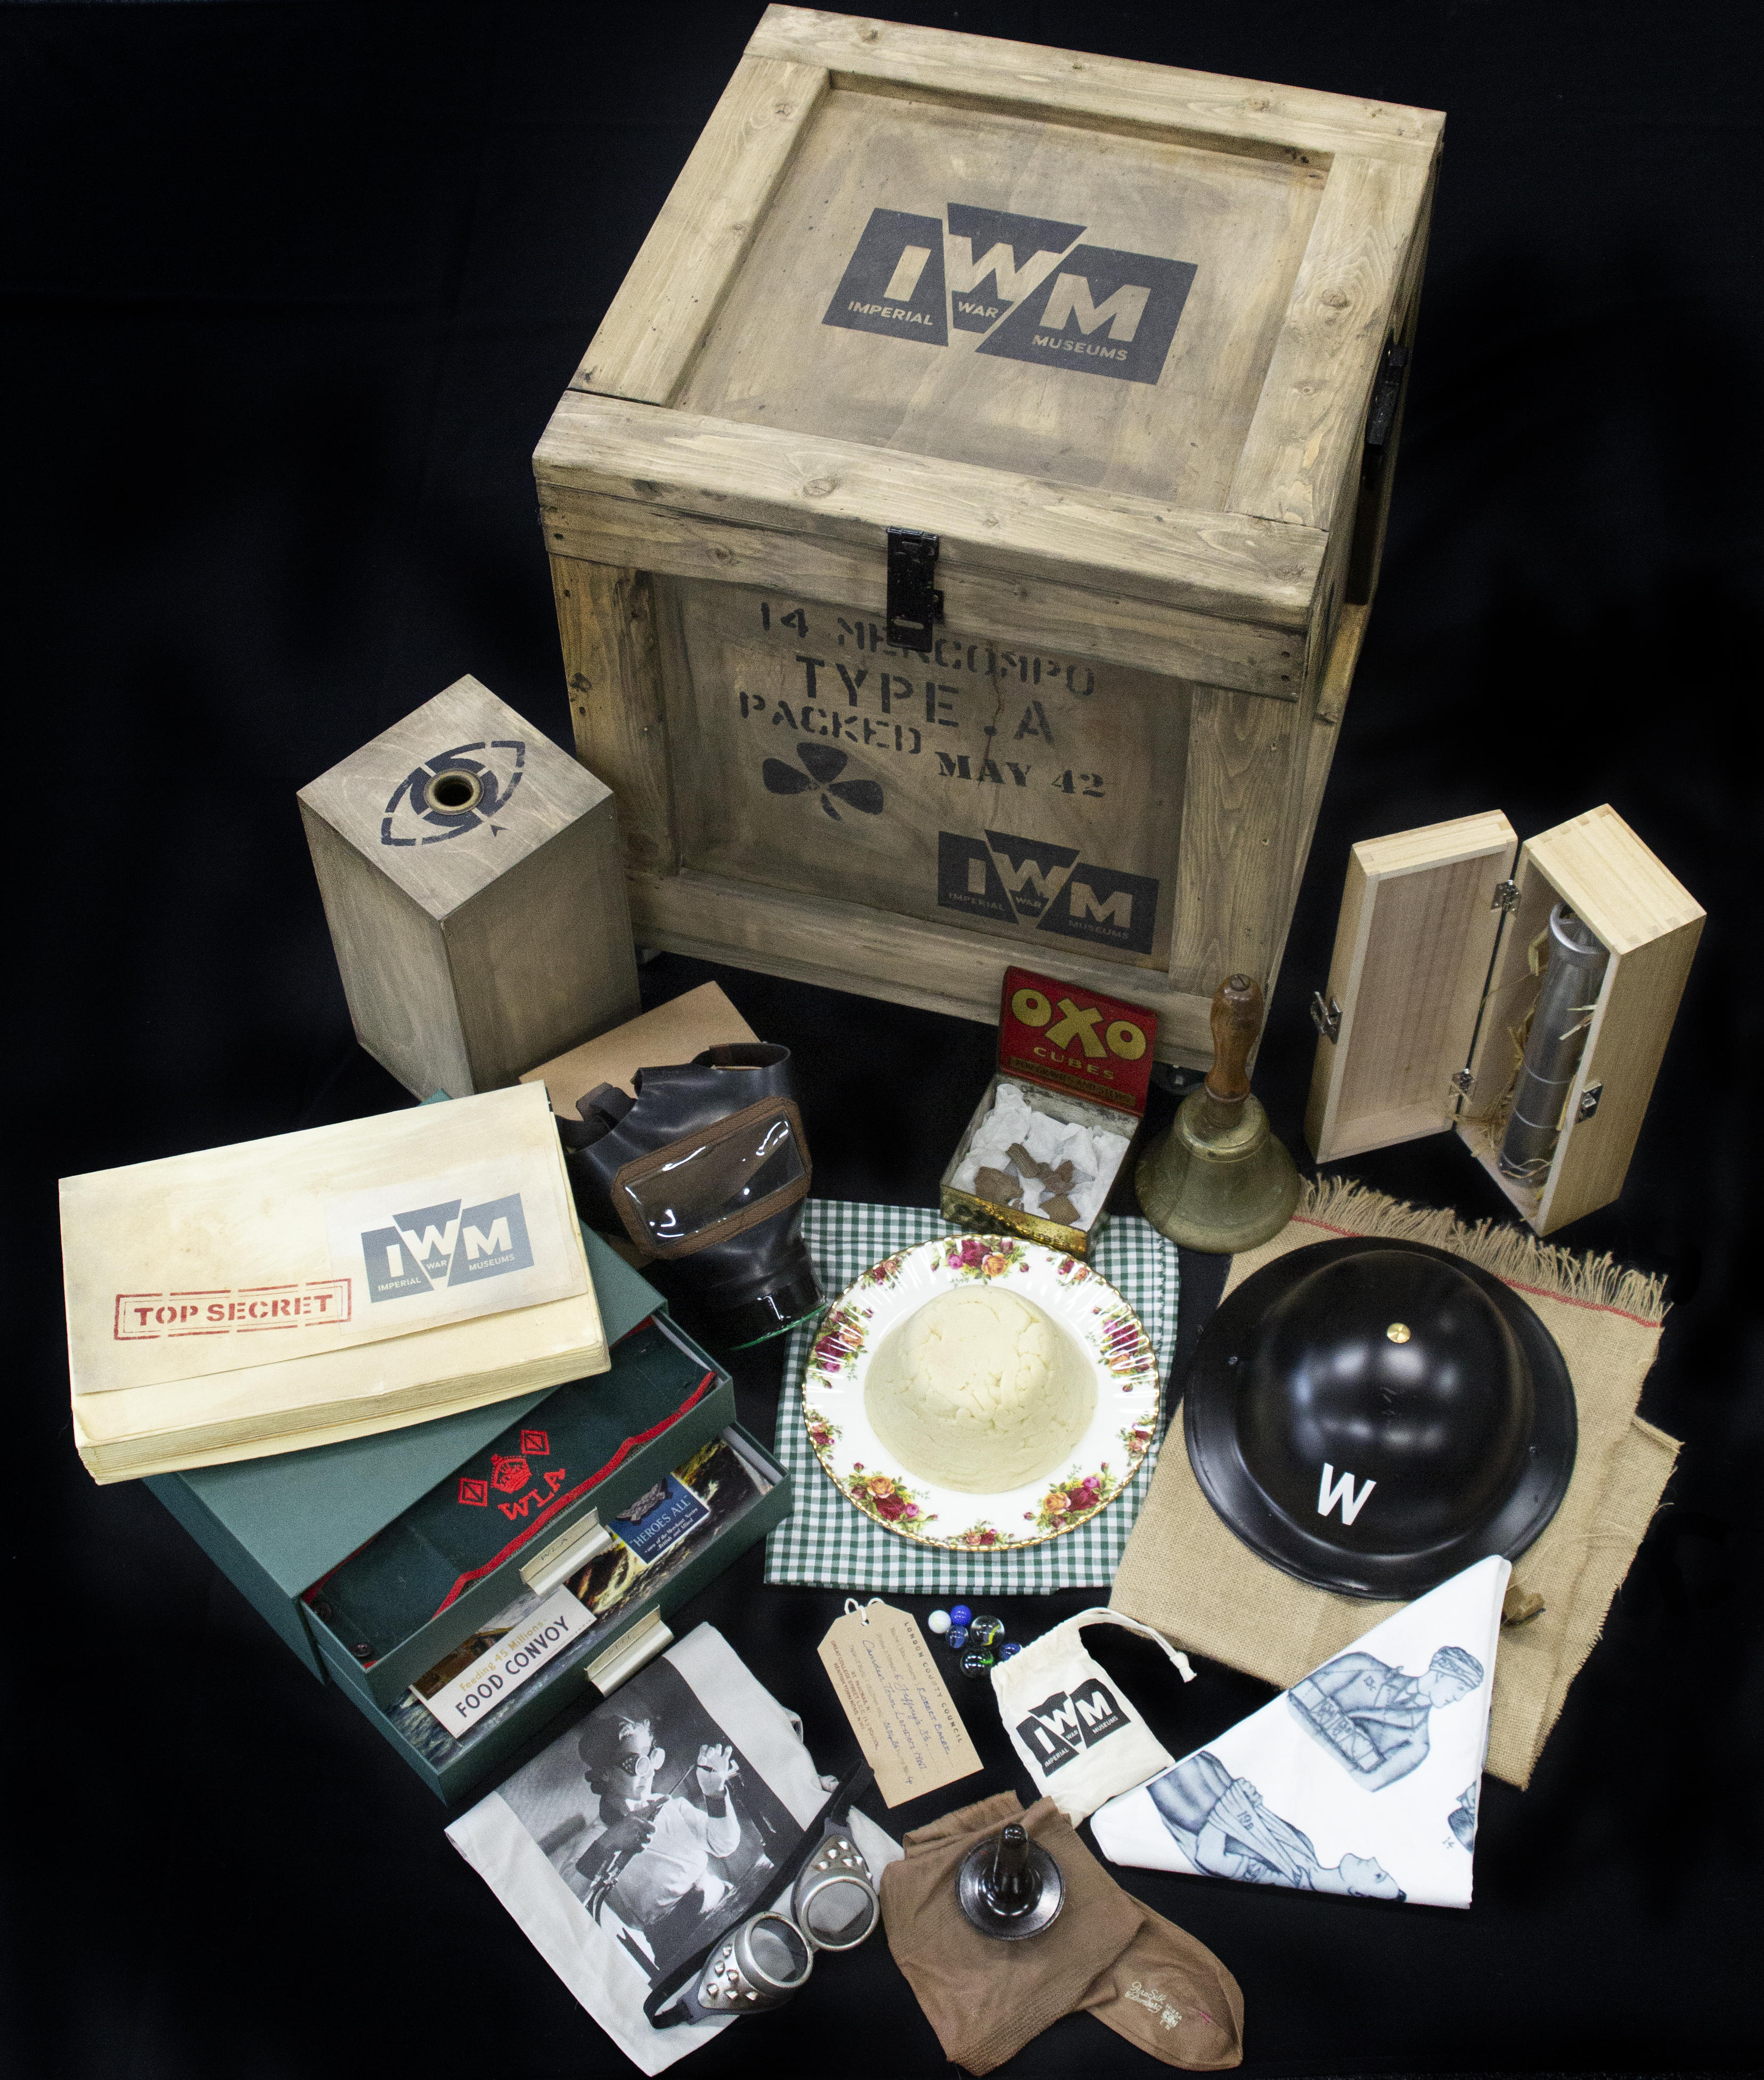 Second World War Loan Box featuring items found in the box